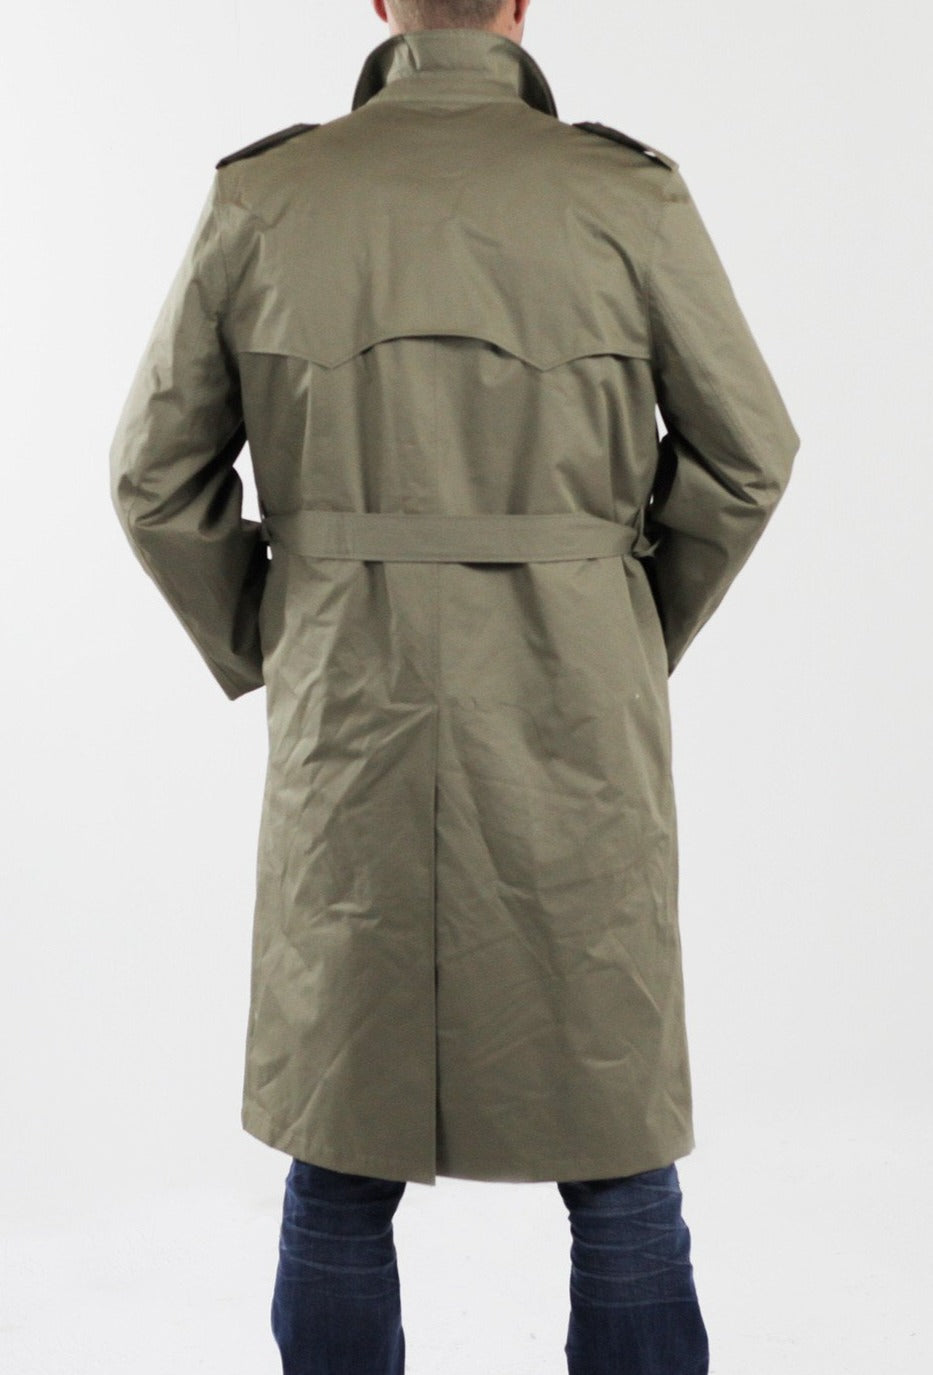 dutch khaki mens military trench coat full length new. Black Bedroom Furniture Sets. Home Design Ideas